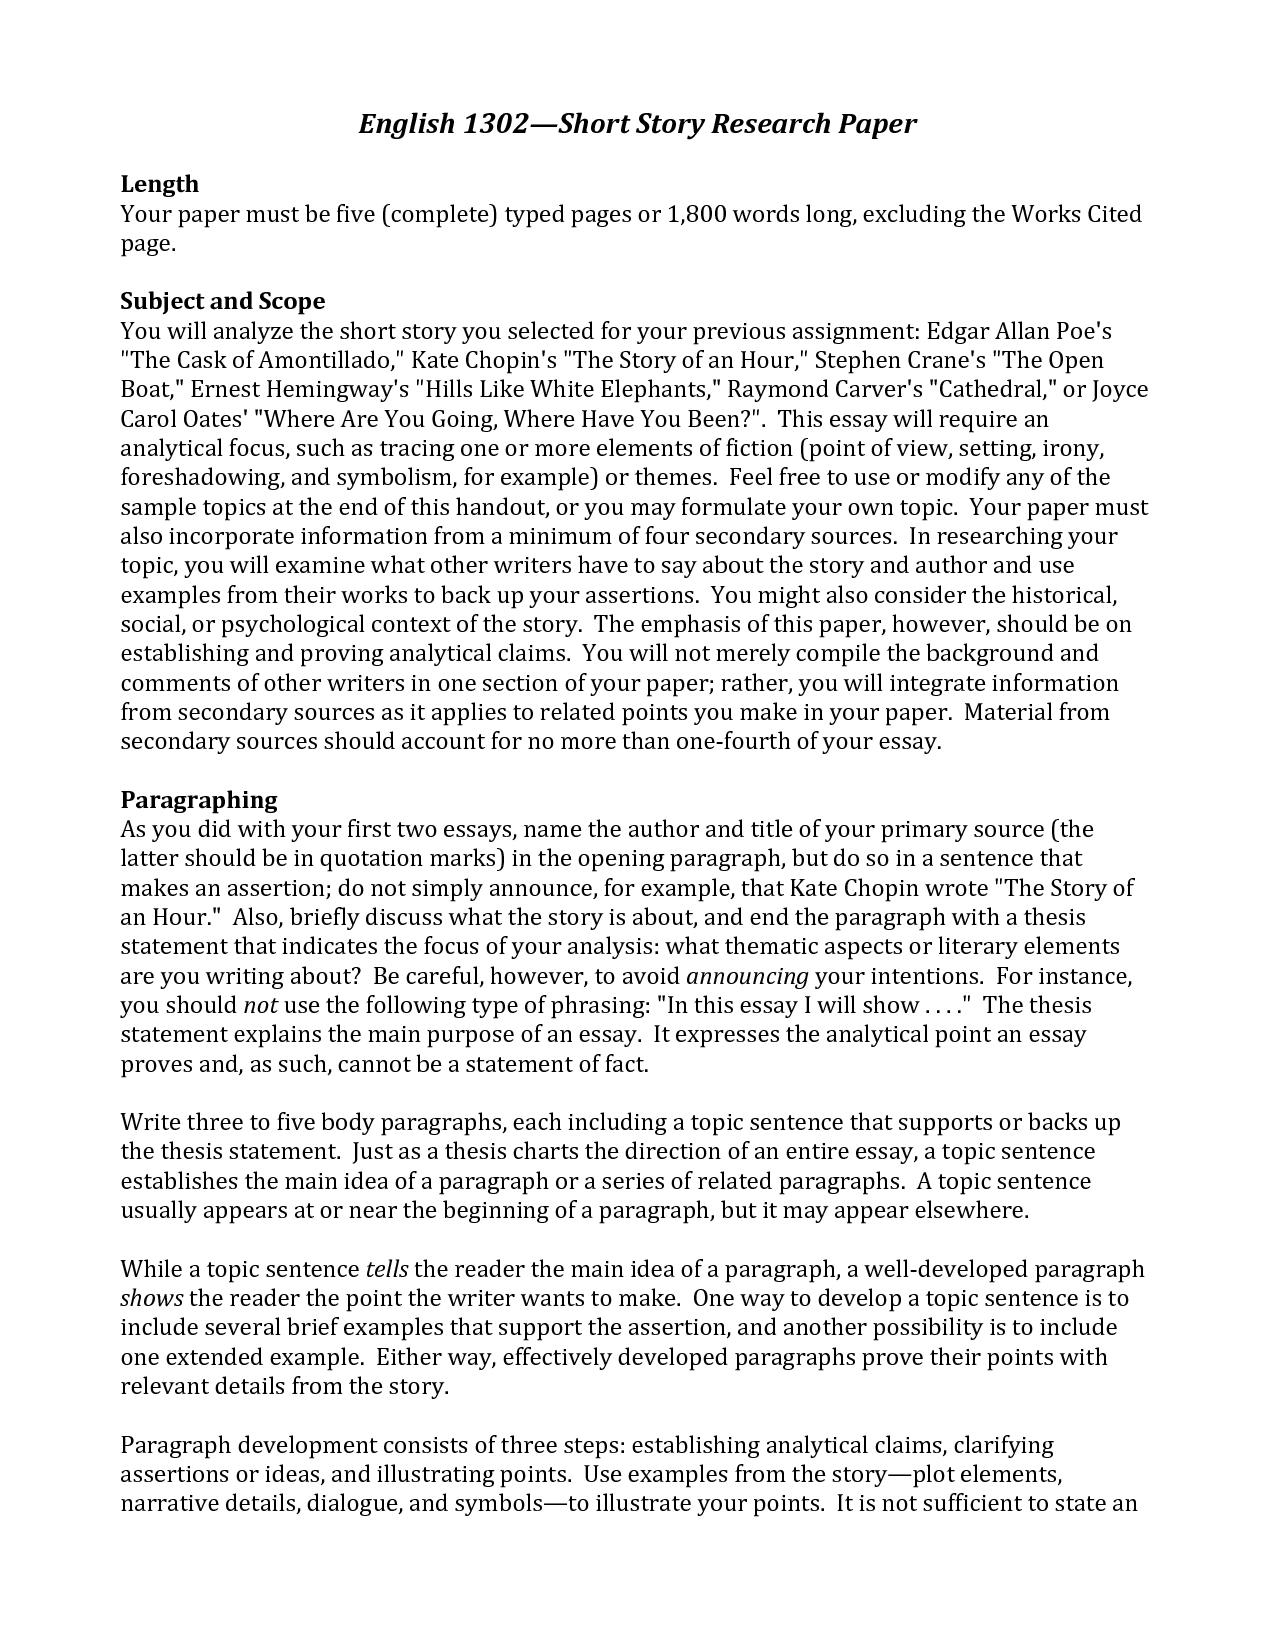 002 Ideas For Research Fascinating Paper Papers In Computer Science Middle School Topic High Full